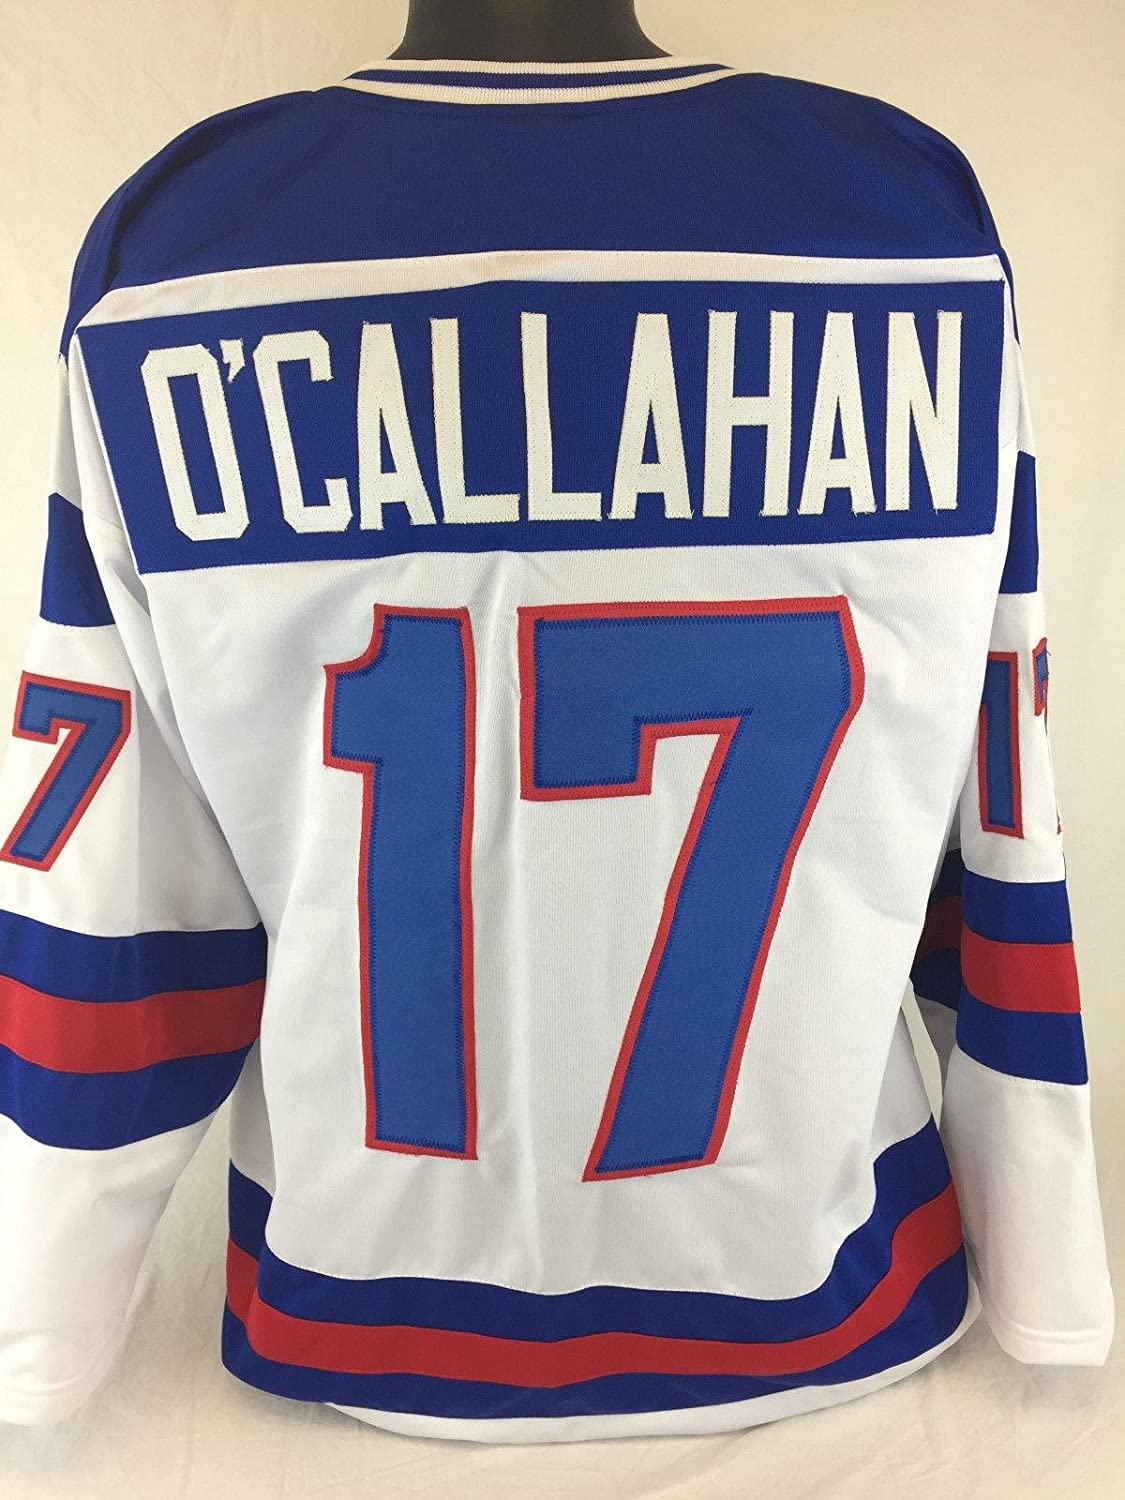 JACK O'CALLAHAN UNSIGNED USA OLYMPIC WHITE JERSEY SIZE 2xl 1980 MIRACLE ON ICE - Autographed Olympic Jerseys Sports Memorabilia